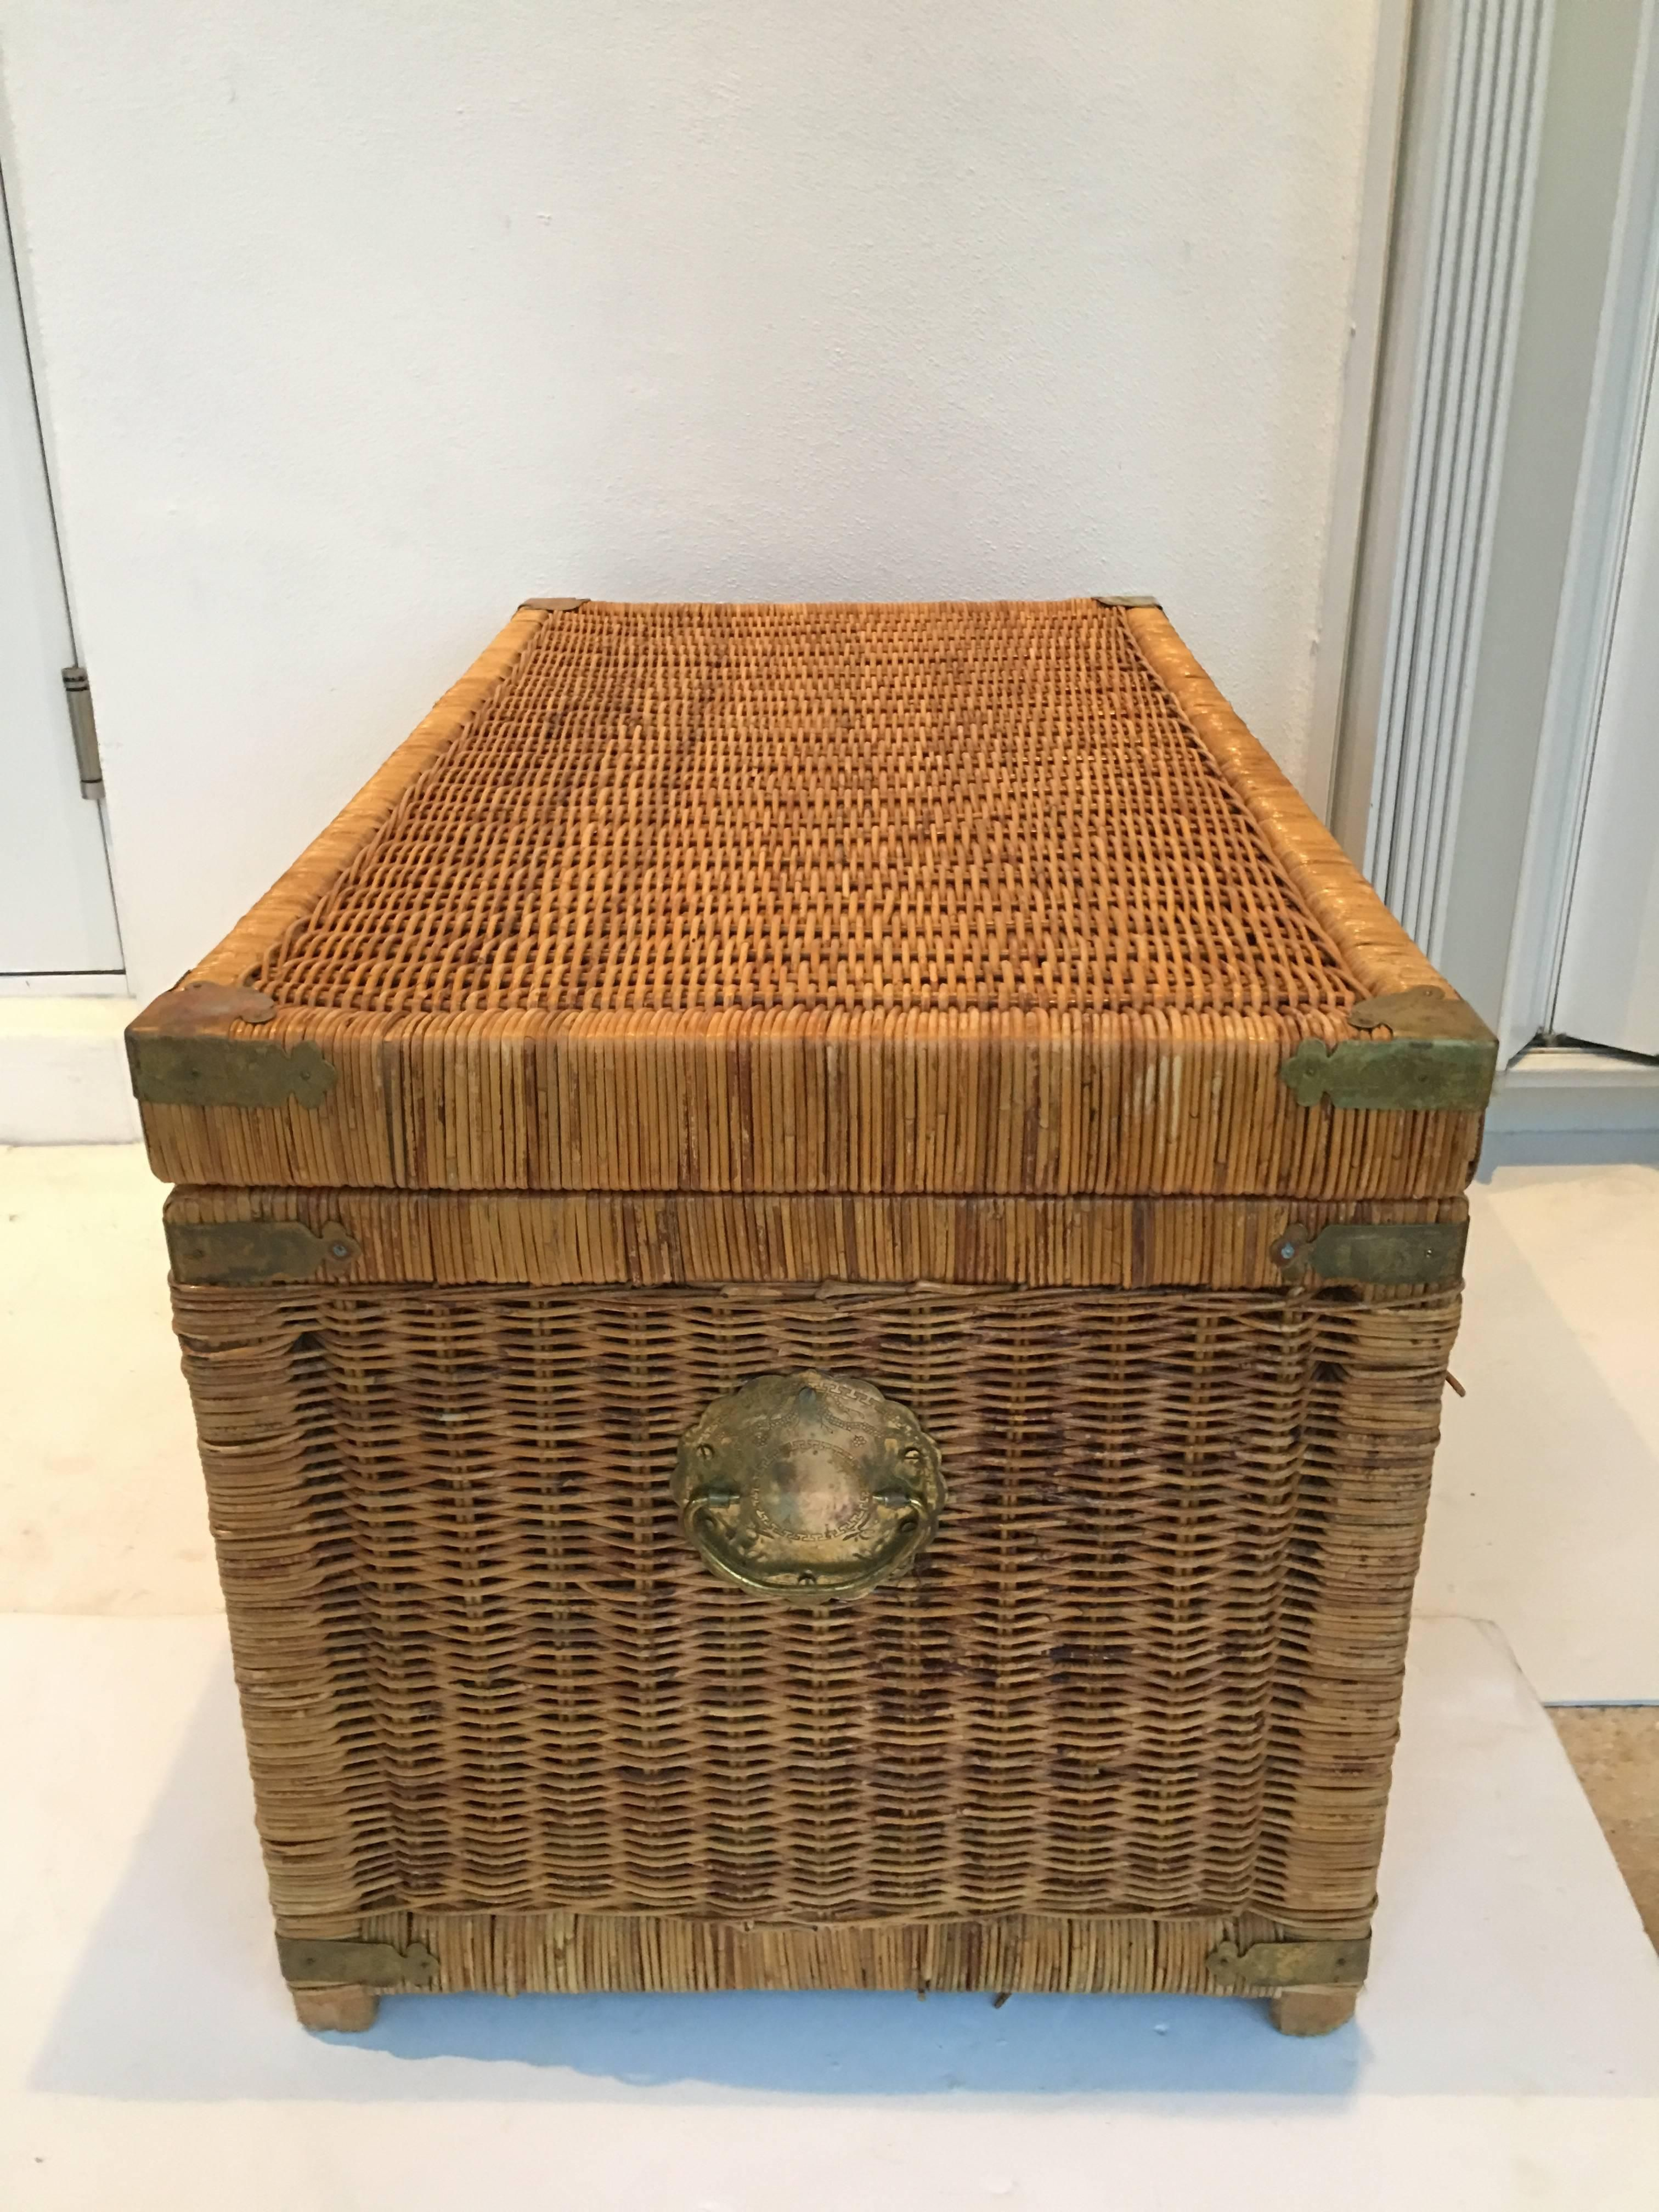 Vintage Wicker And Brass Chinoiserie Style Trunk Chest For Sale At 1stdibs Vintage Wicker Wicker Chinoiserie